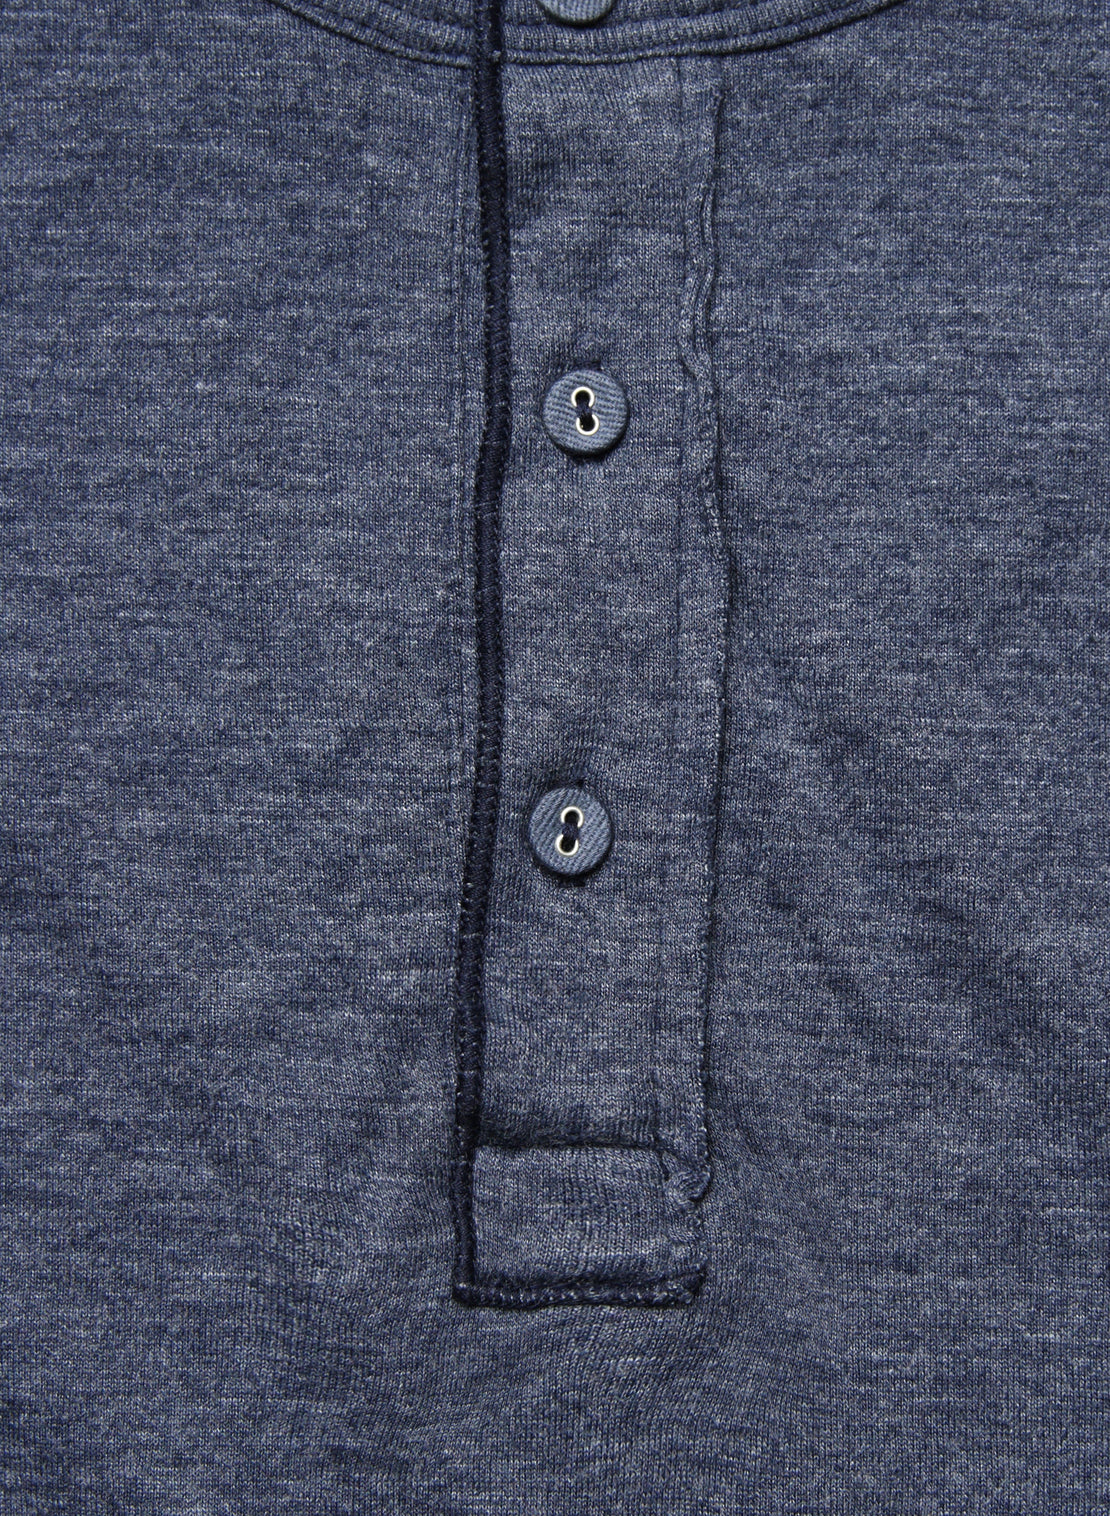 Pointelle Henley - Navy - Save Khaki - STAG Provisions - Tops - L/S Knit